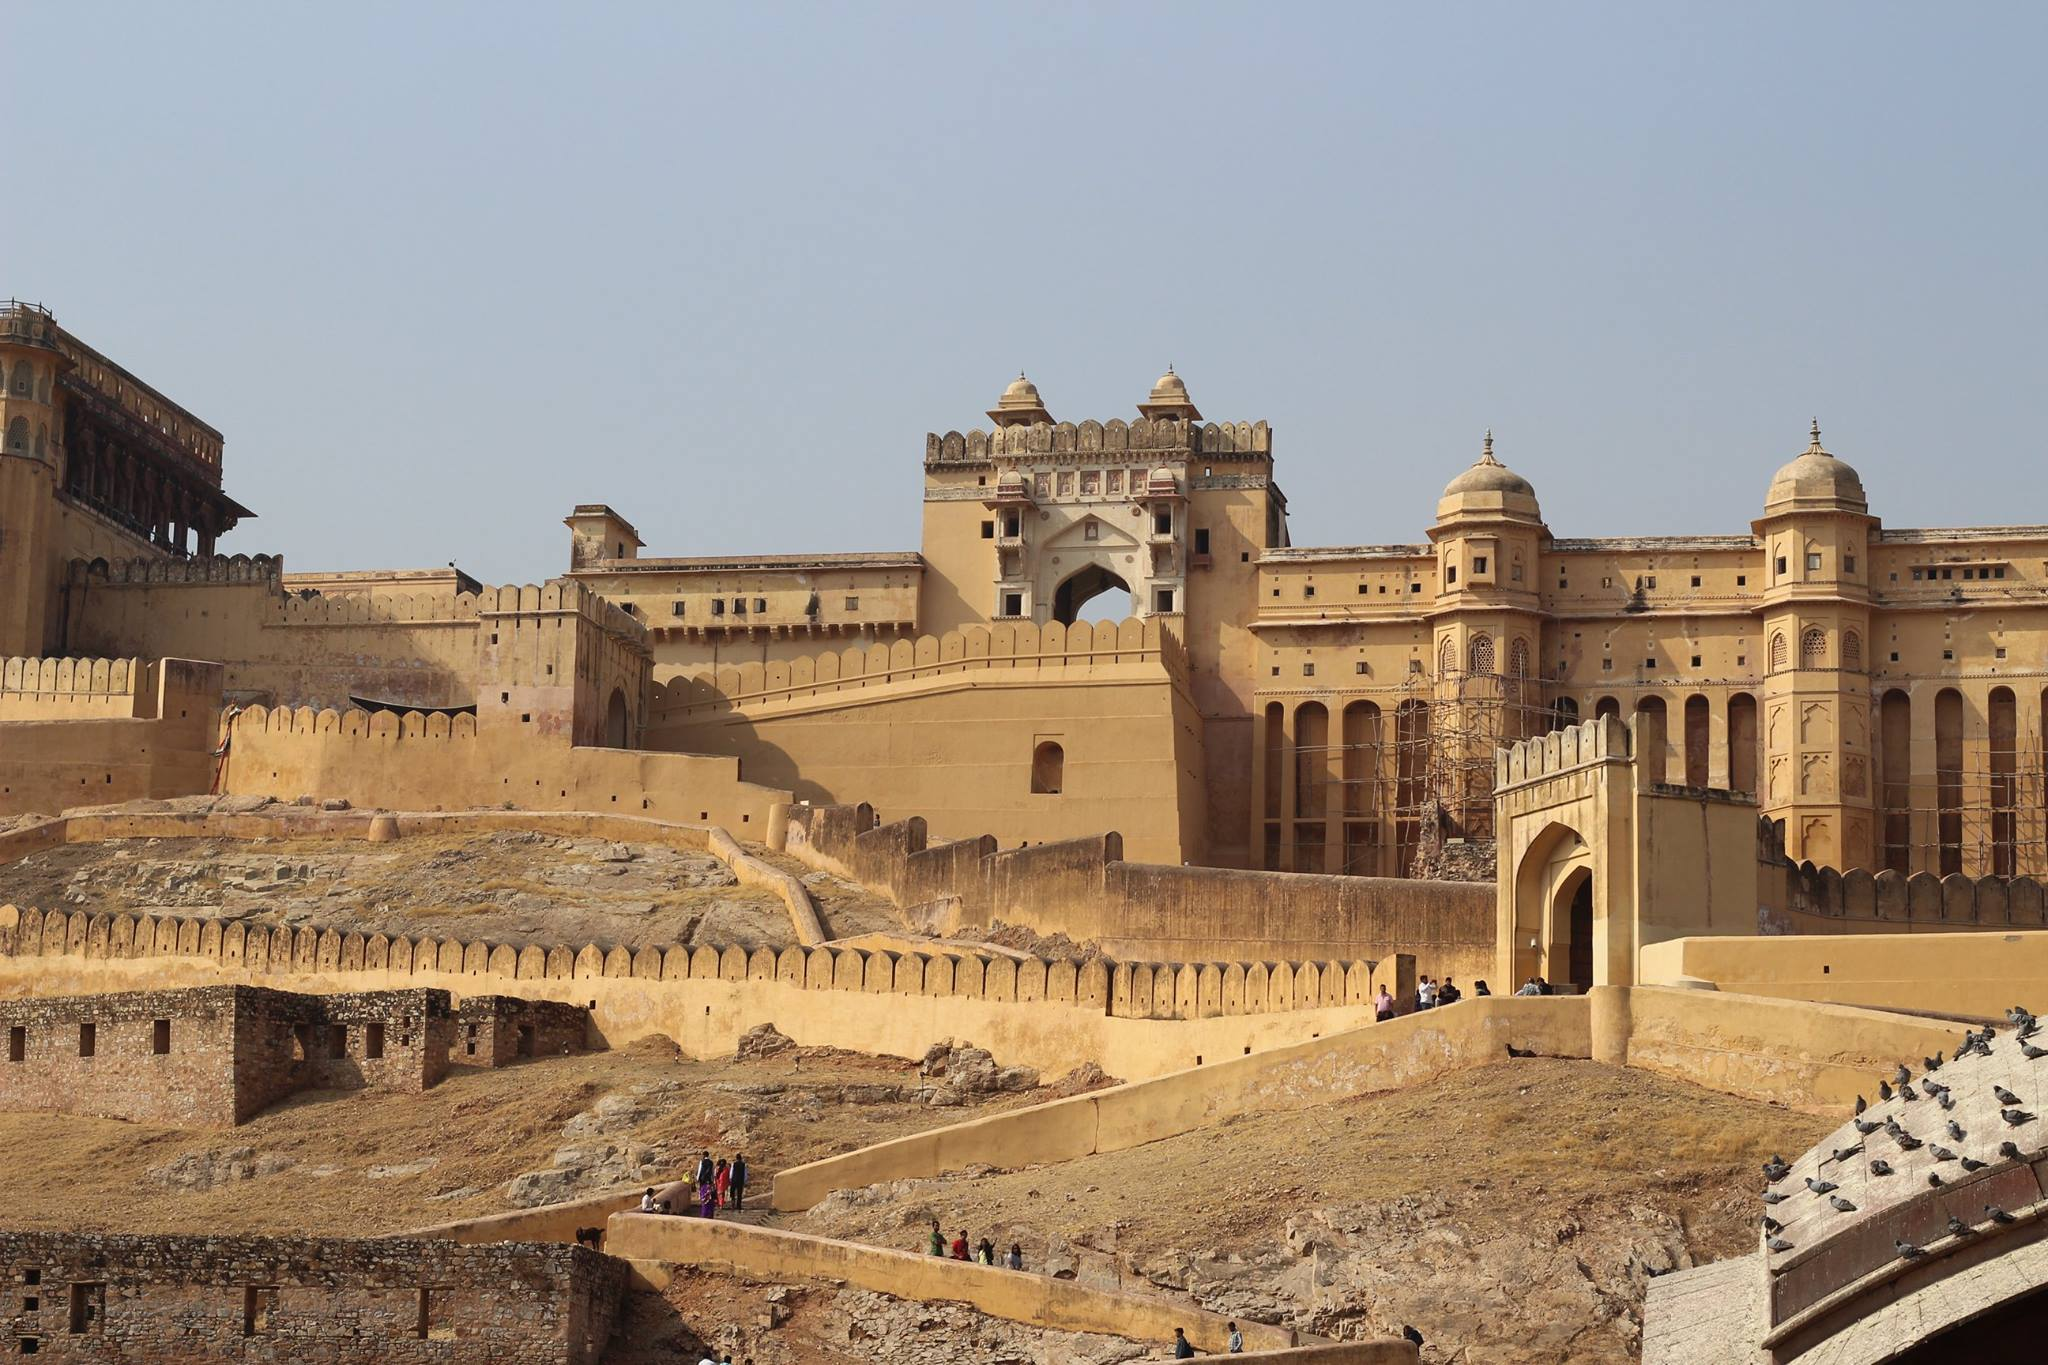 The fort in Jaipur is one of the most incredible in India!